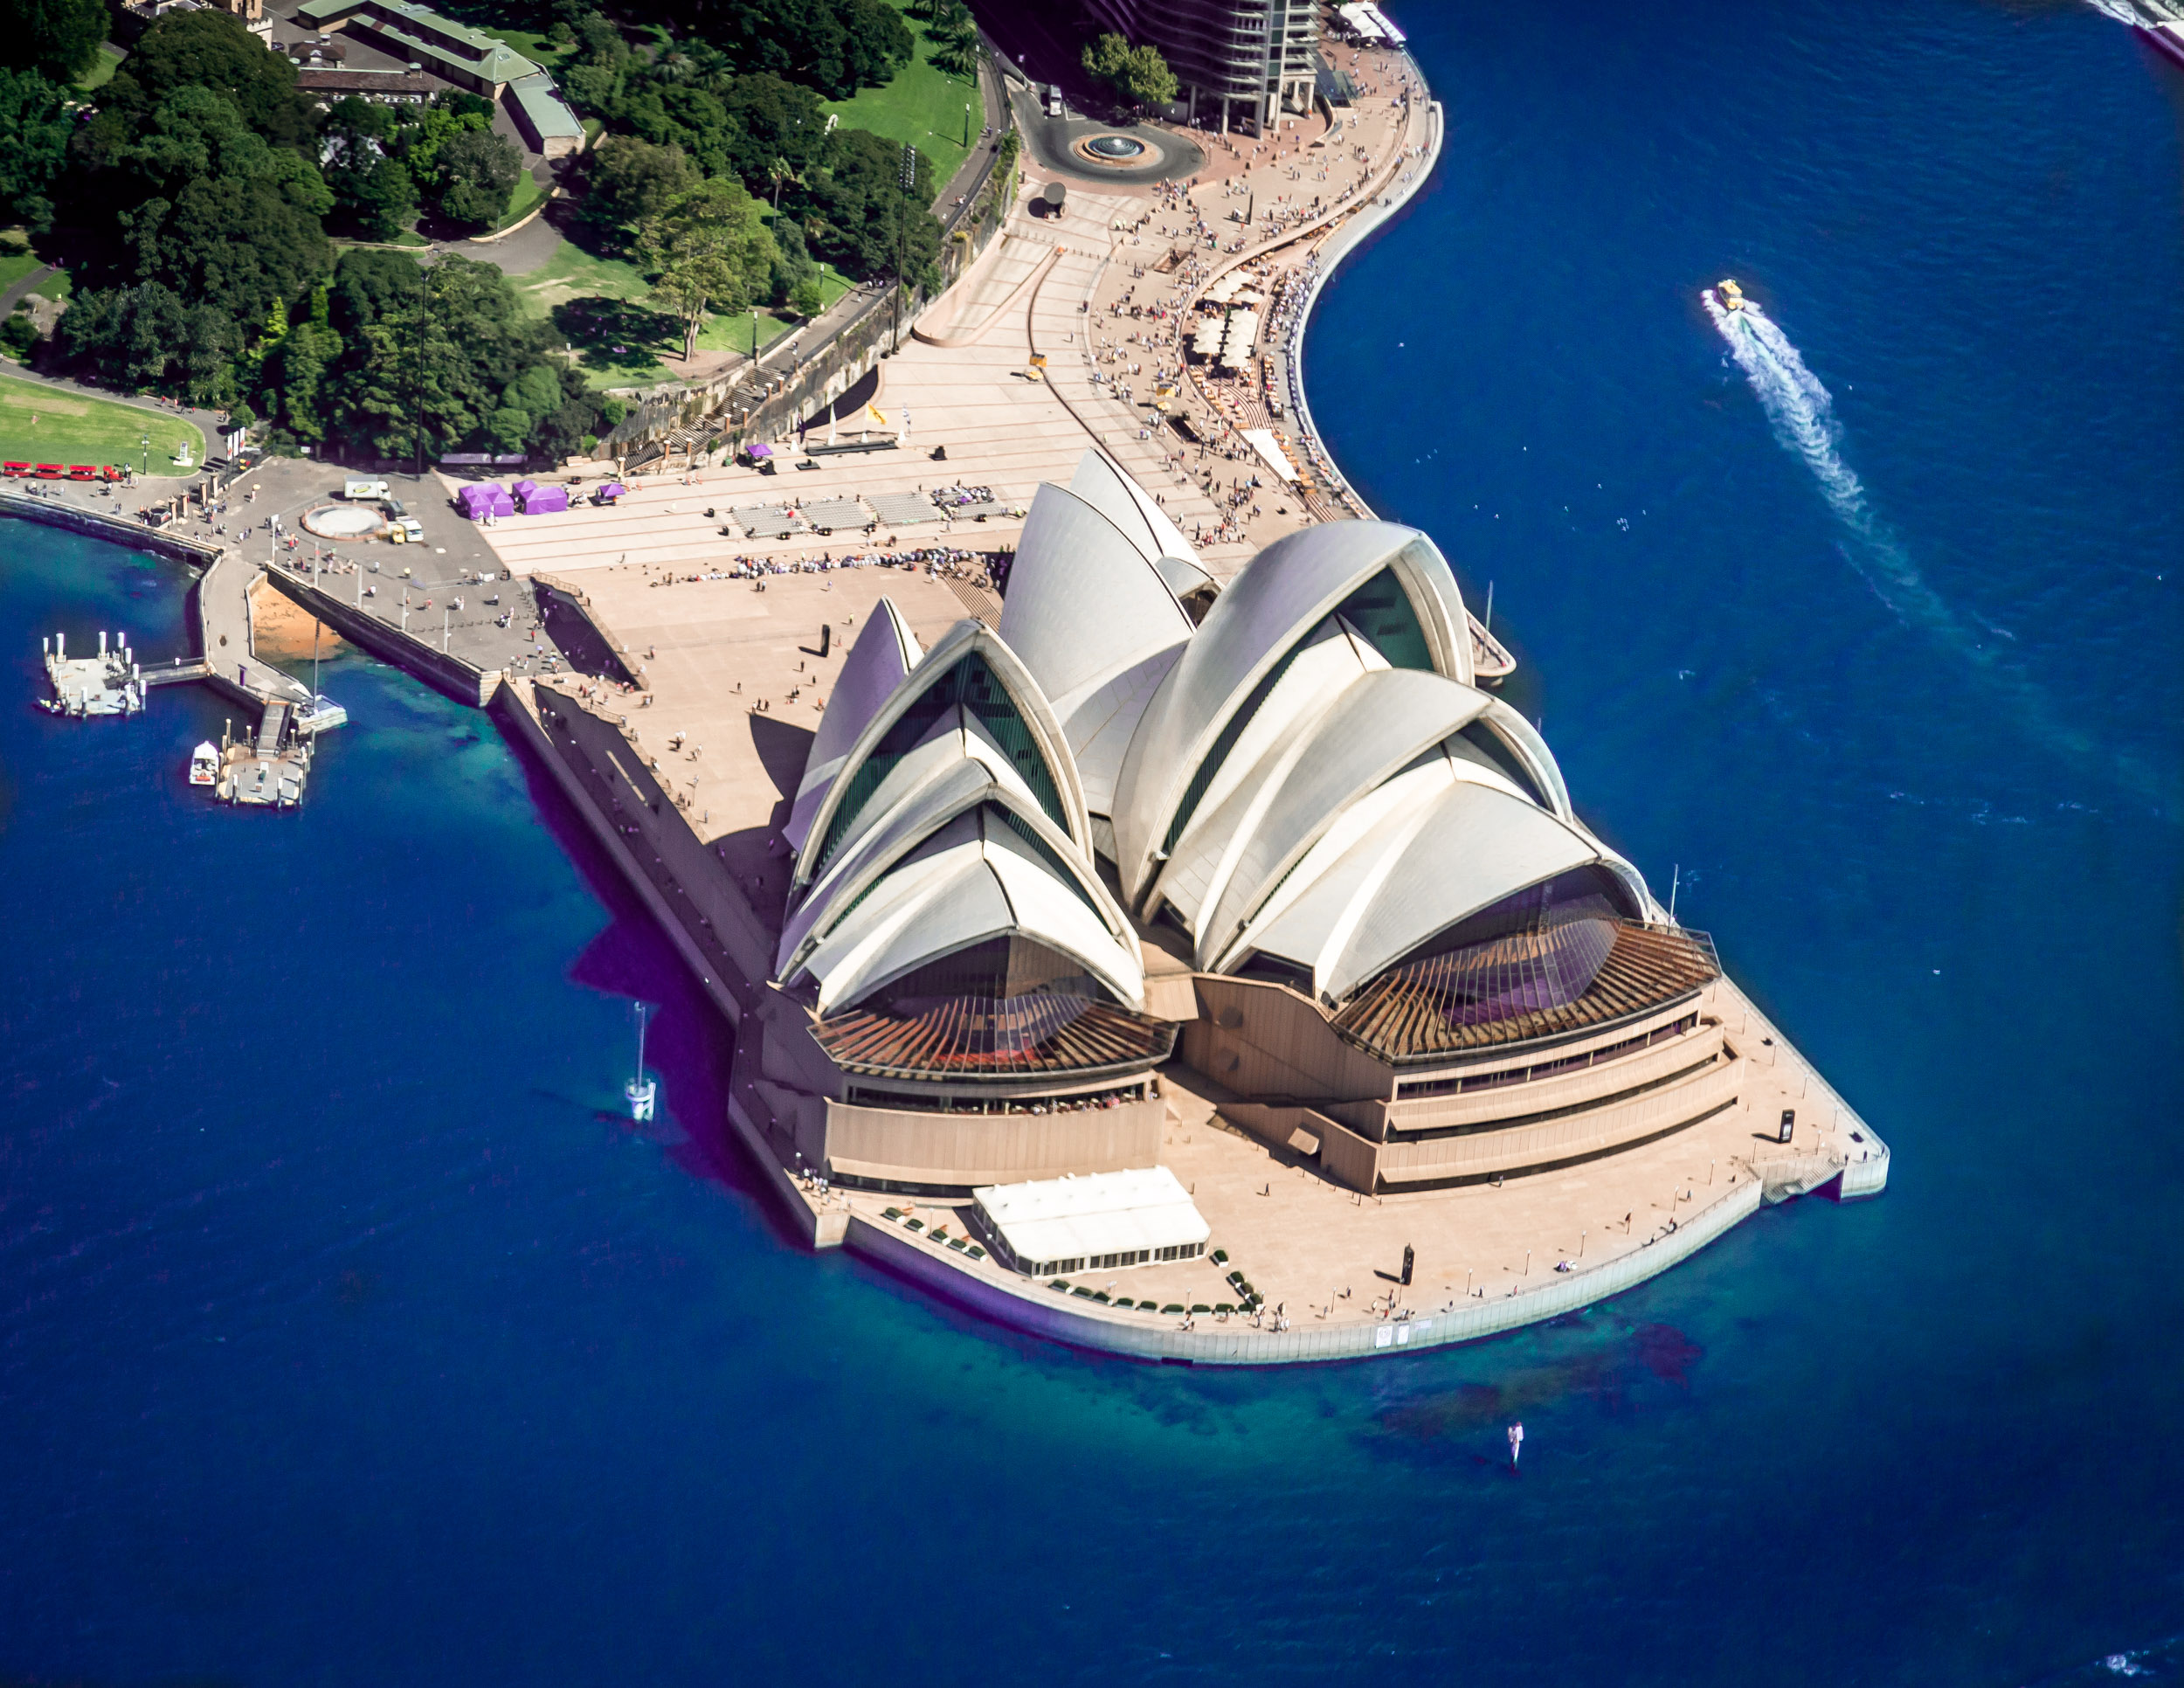 Must see places in Australia: Sydney Opera House